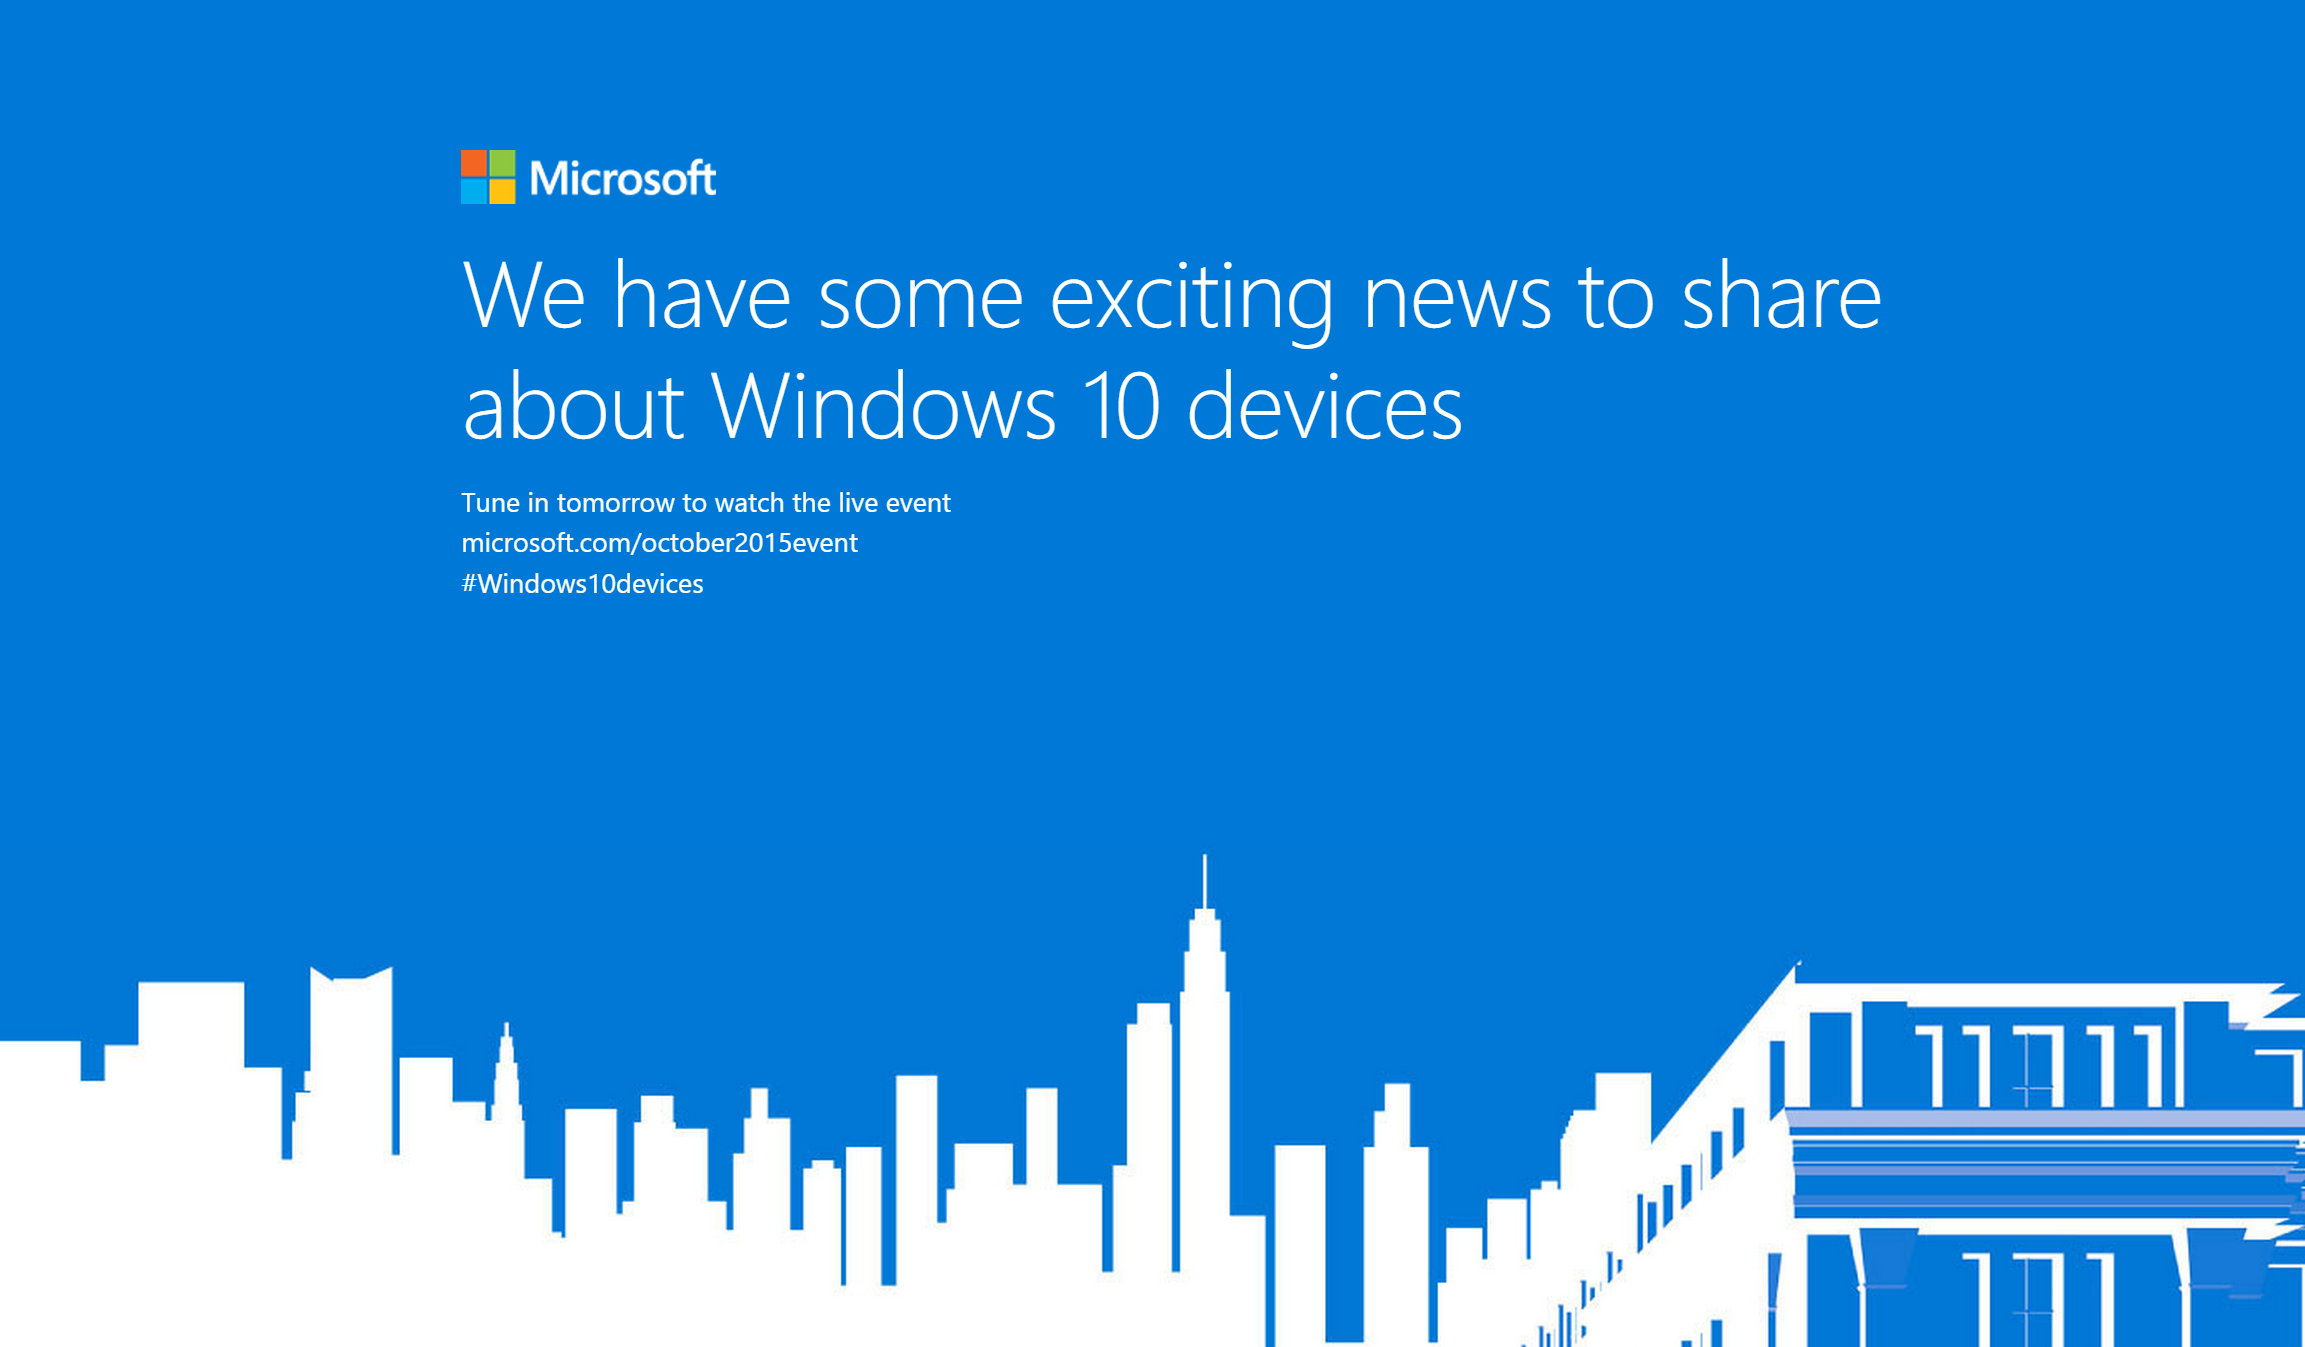 Windows 10 devices event October 6, 2015